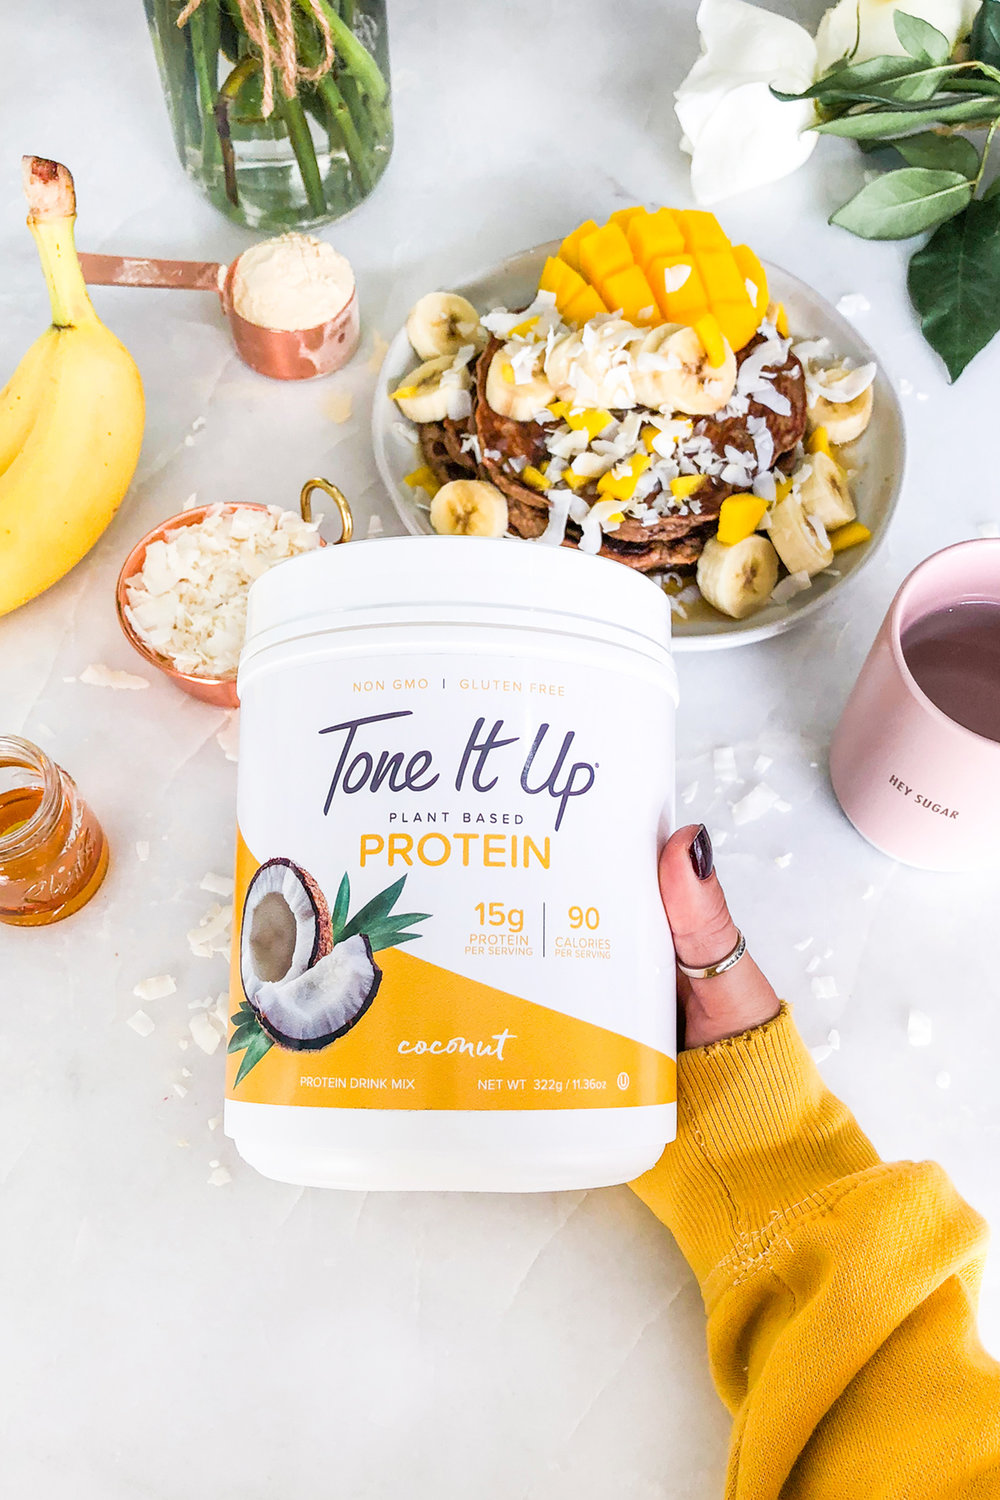 Product Photography / Tone It Up Protein / Healthy Recipes / Food Styling / Kelly Fiance Creative